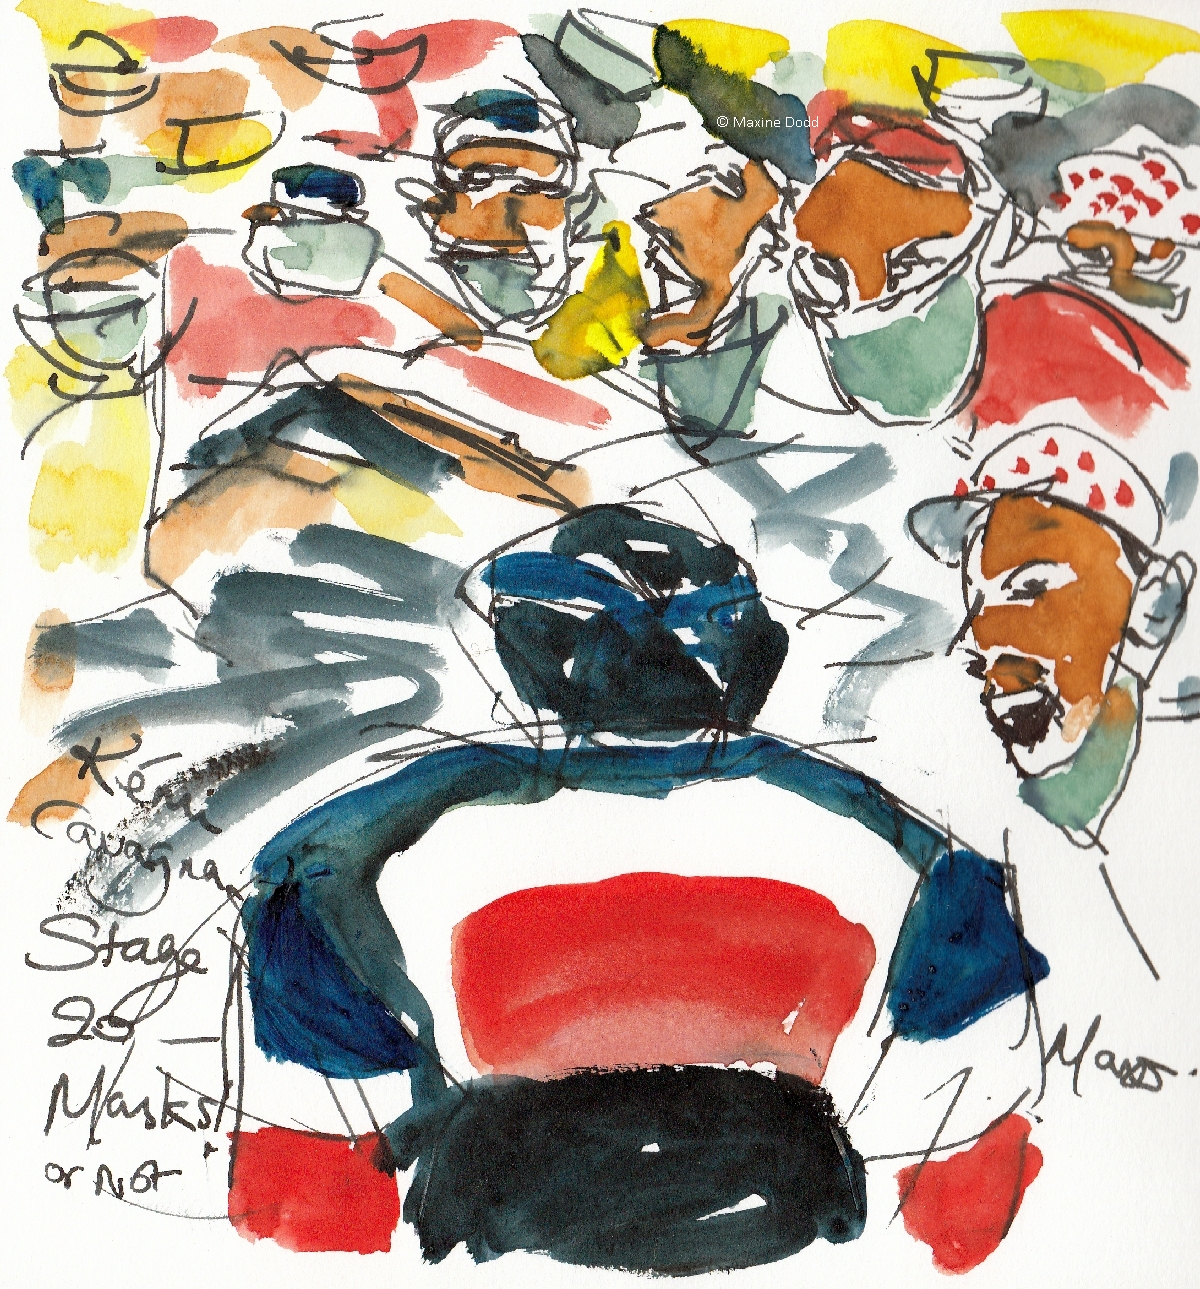 Masks - or not! Watercolour, pen and ink, by Maxine Dodd